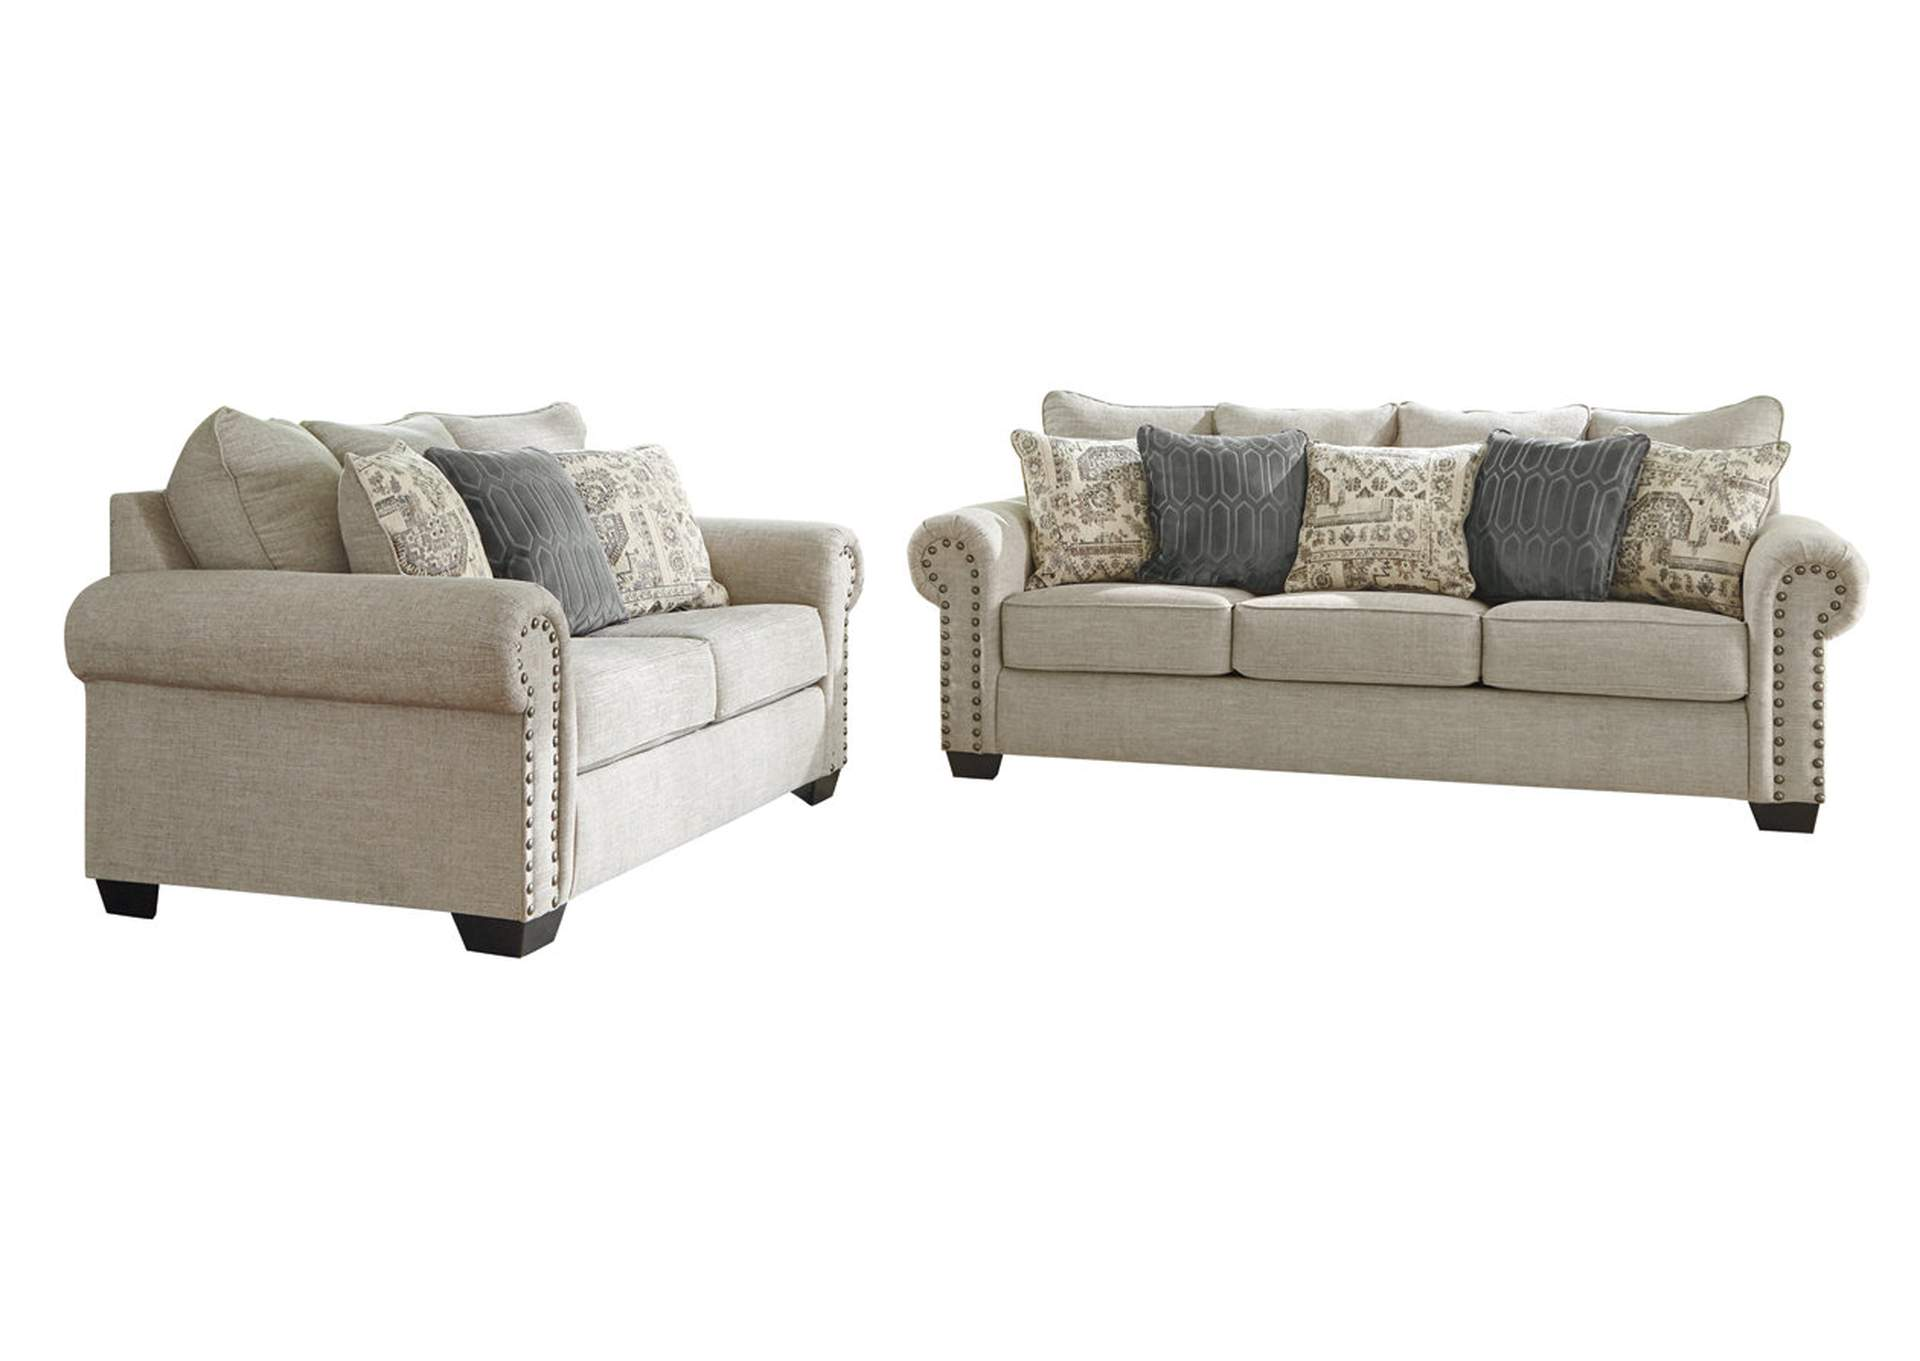 Zarina Jute Sofa & Loveseat,Signature Design By Ashley